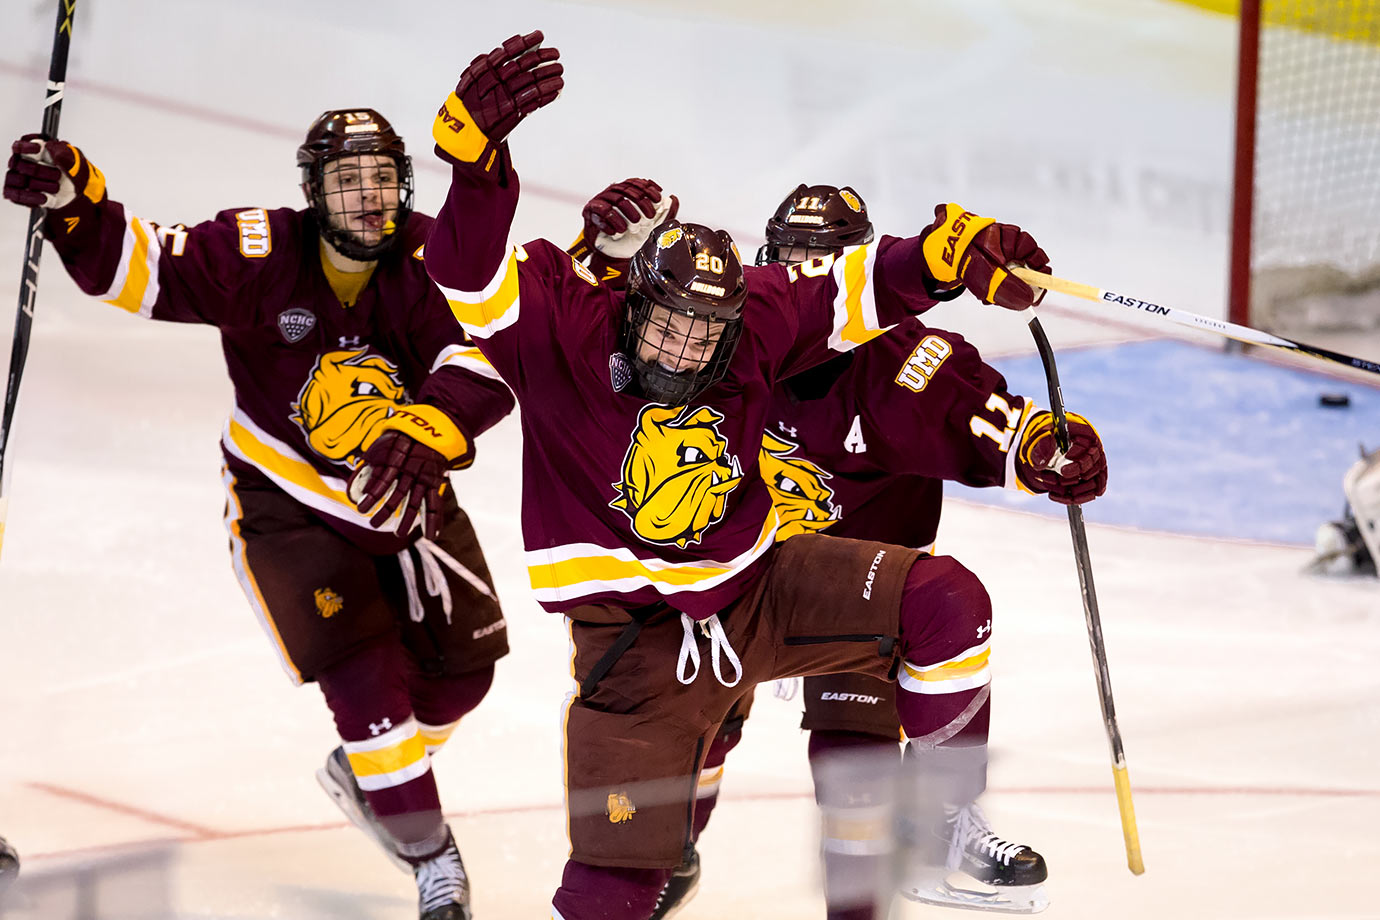 Minnesota Duluth's Karson Kuhlman celebrates his double overtime winning goal against Providence College during Game One of the NCAA Division I Men's Ice Hockey Northeast Regional Championship Semifinals in Worcester, Mass.